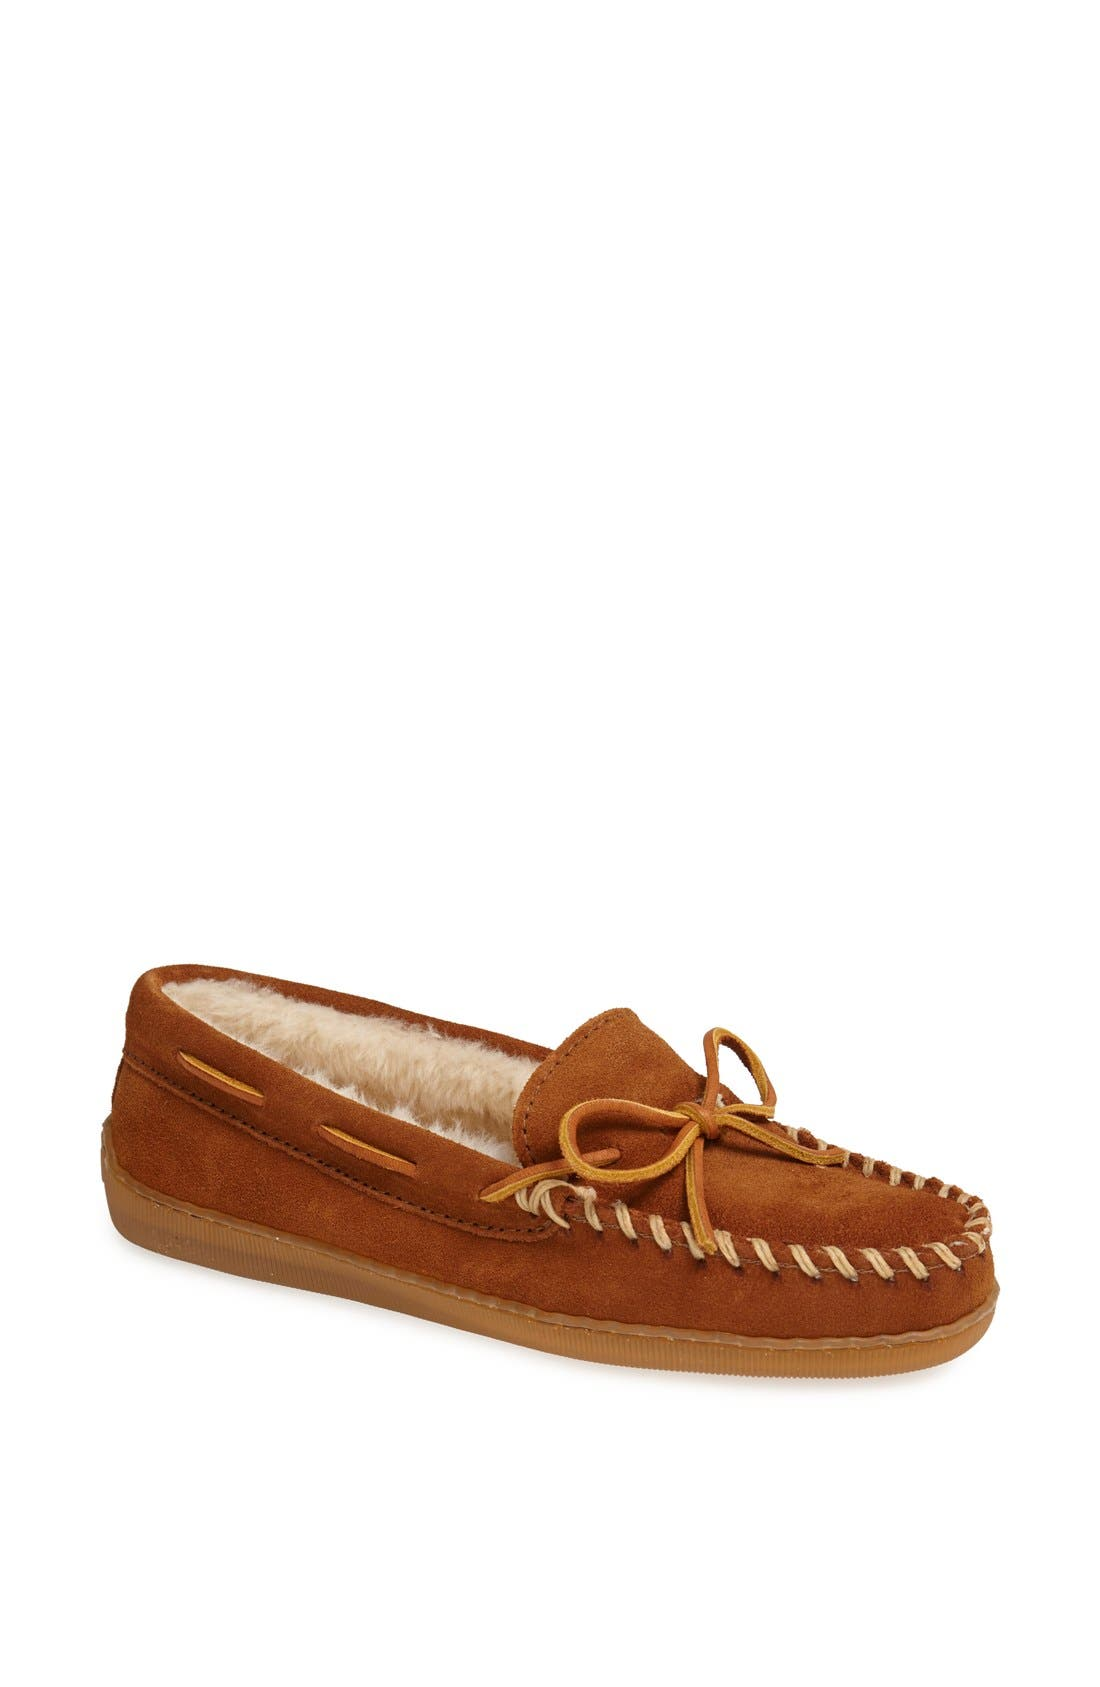 Minnetonka Moccasin Slipper